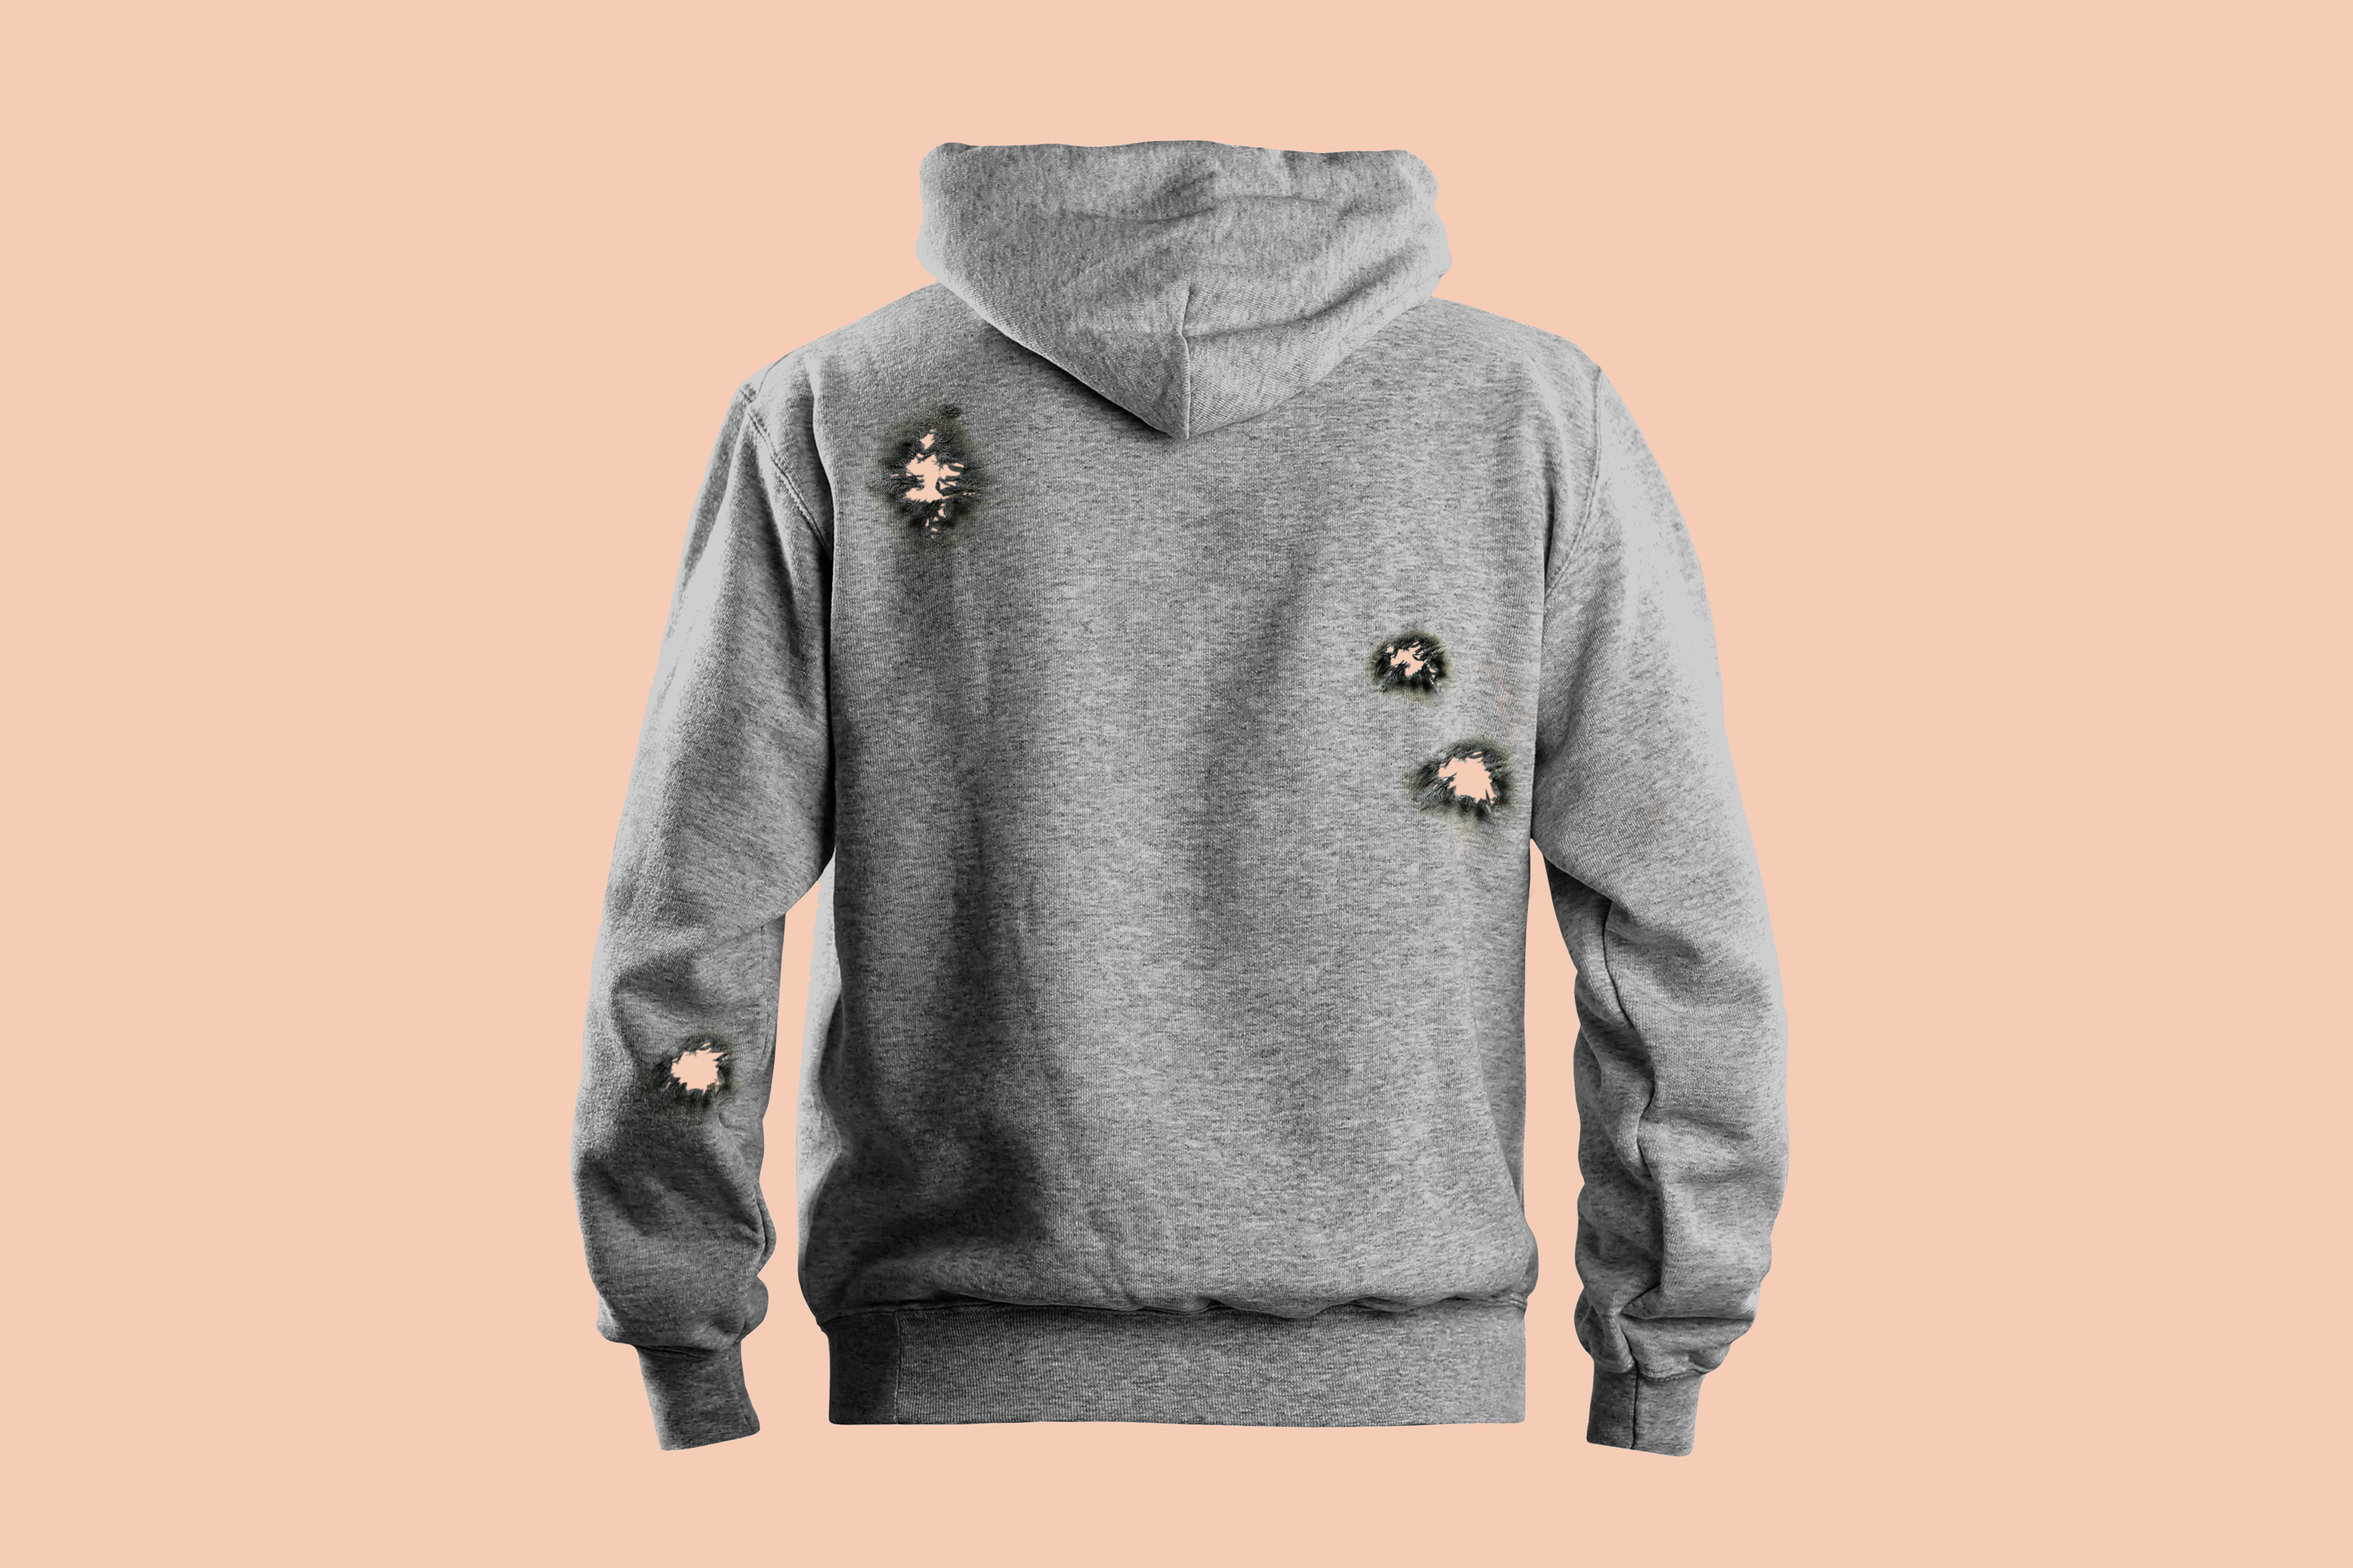 rear view of gray hooded sweatshirt with bulletholes